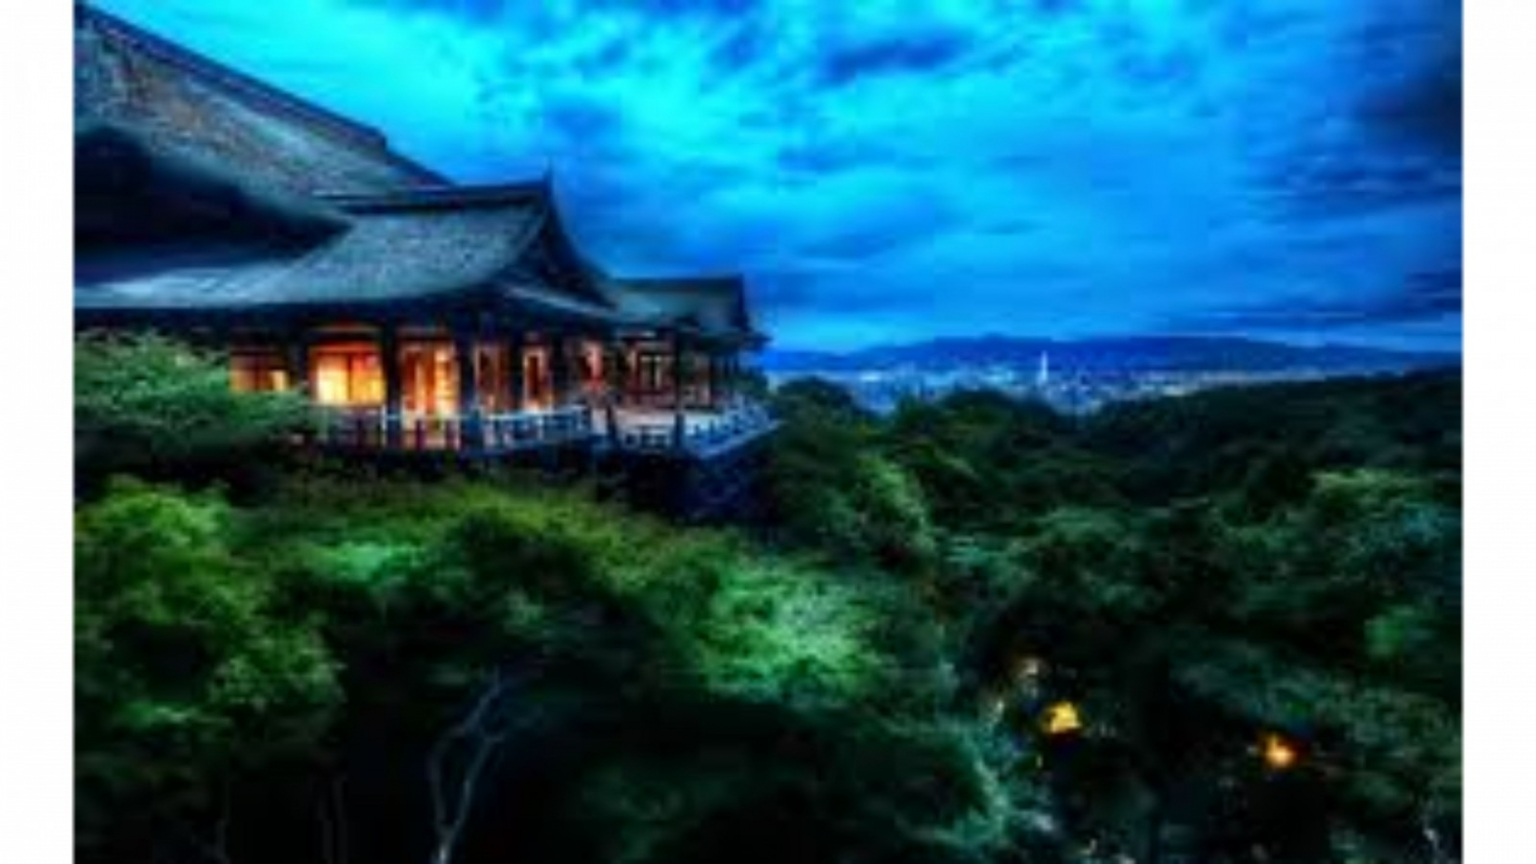 download Trending 2016 Kyoto Japan 4K Wallpaper 4K Wallpaper 1536x864